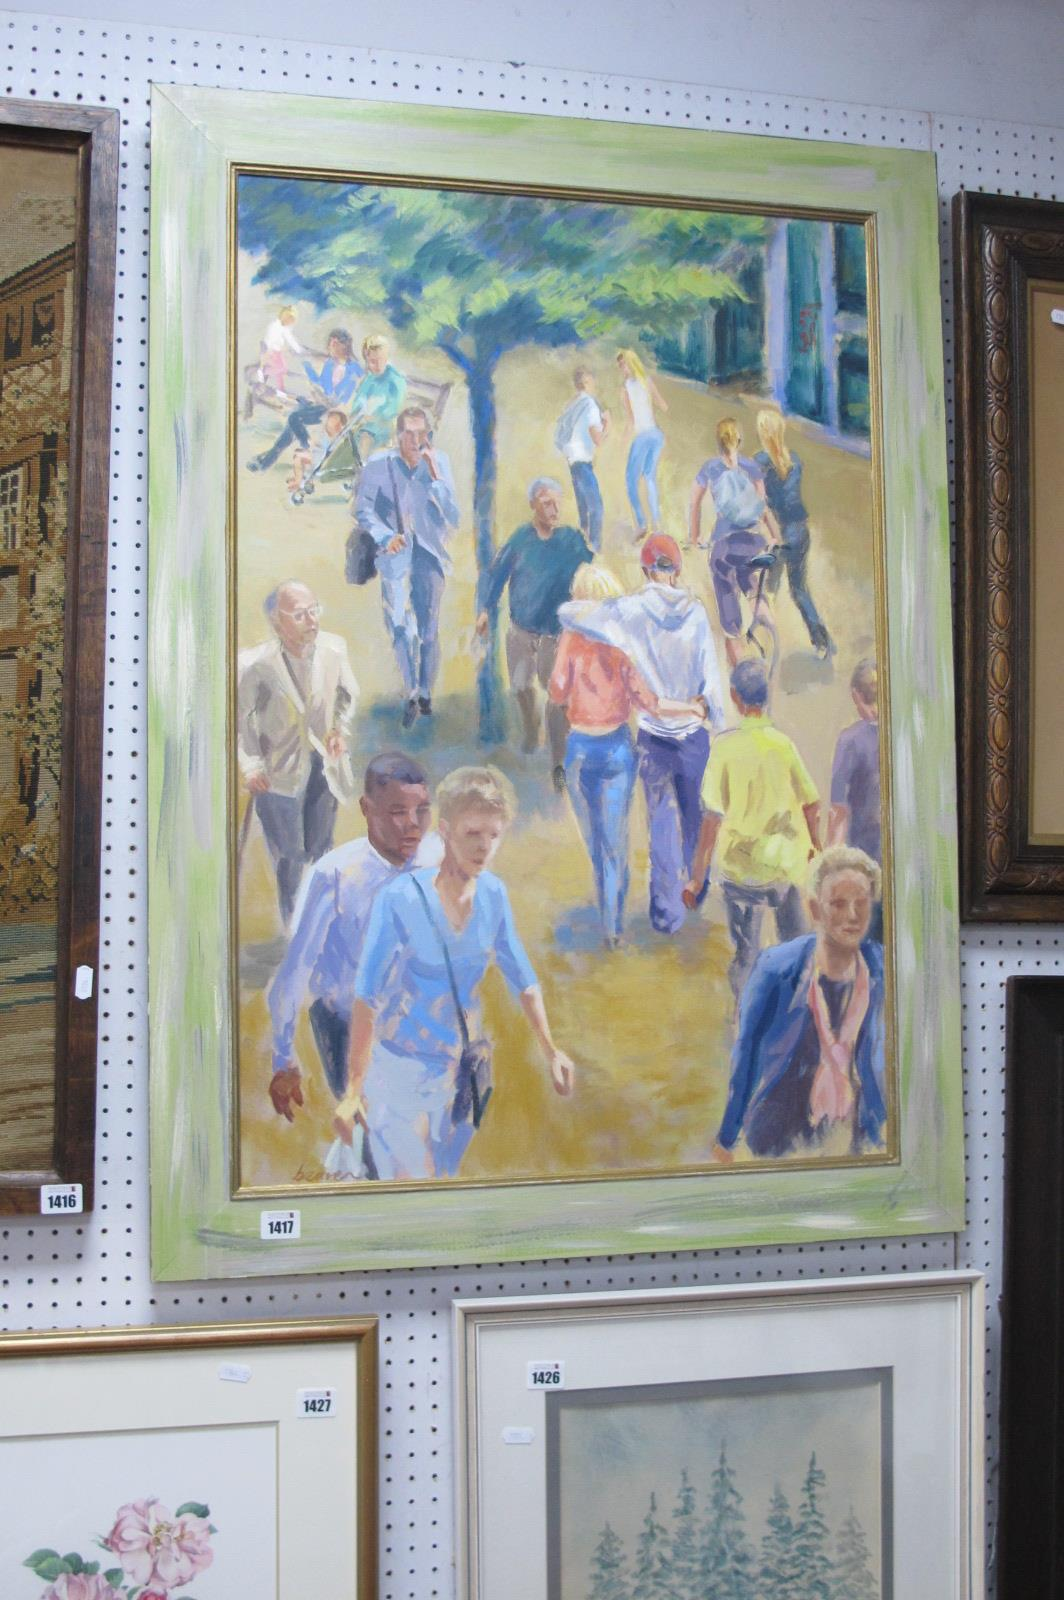 Mark Beaver 'Lovers In The City', oil on canvas, 82 x 55cm, signed lower left, details and title and